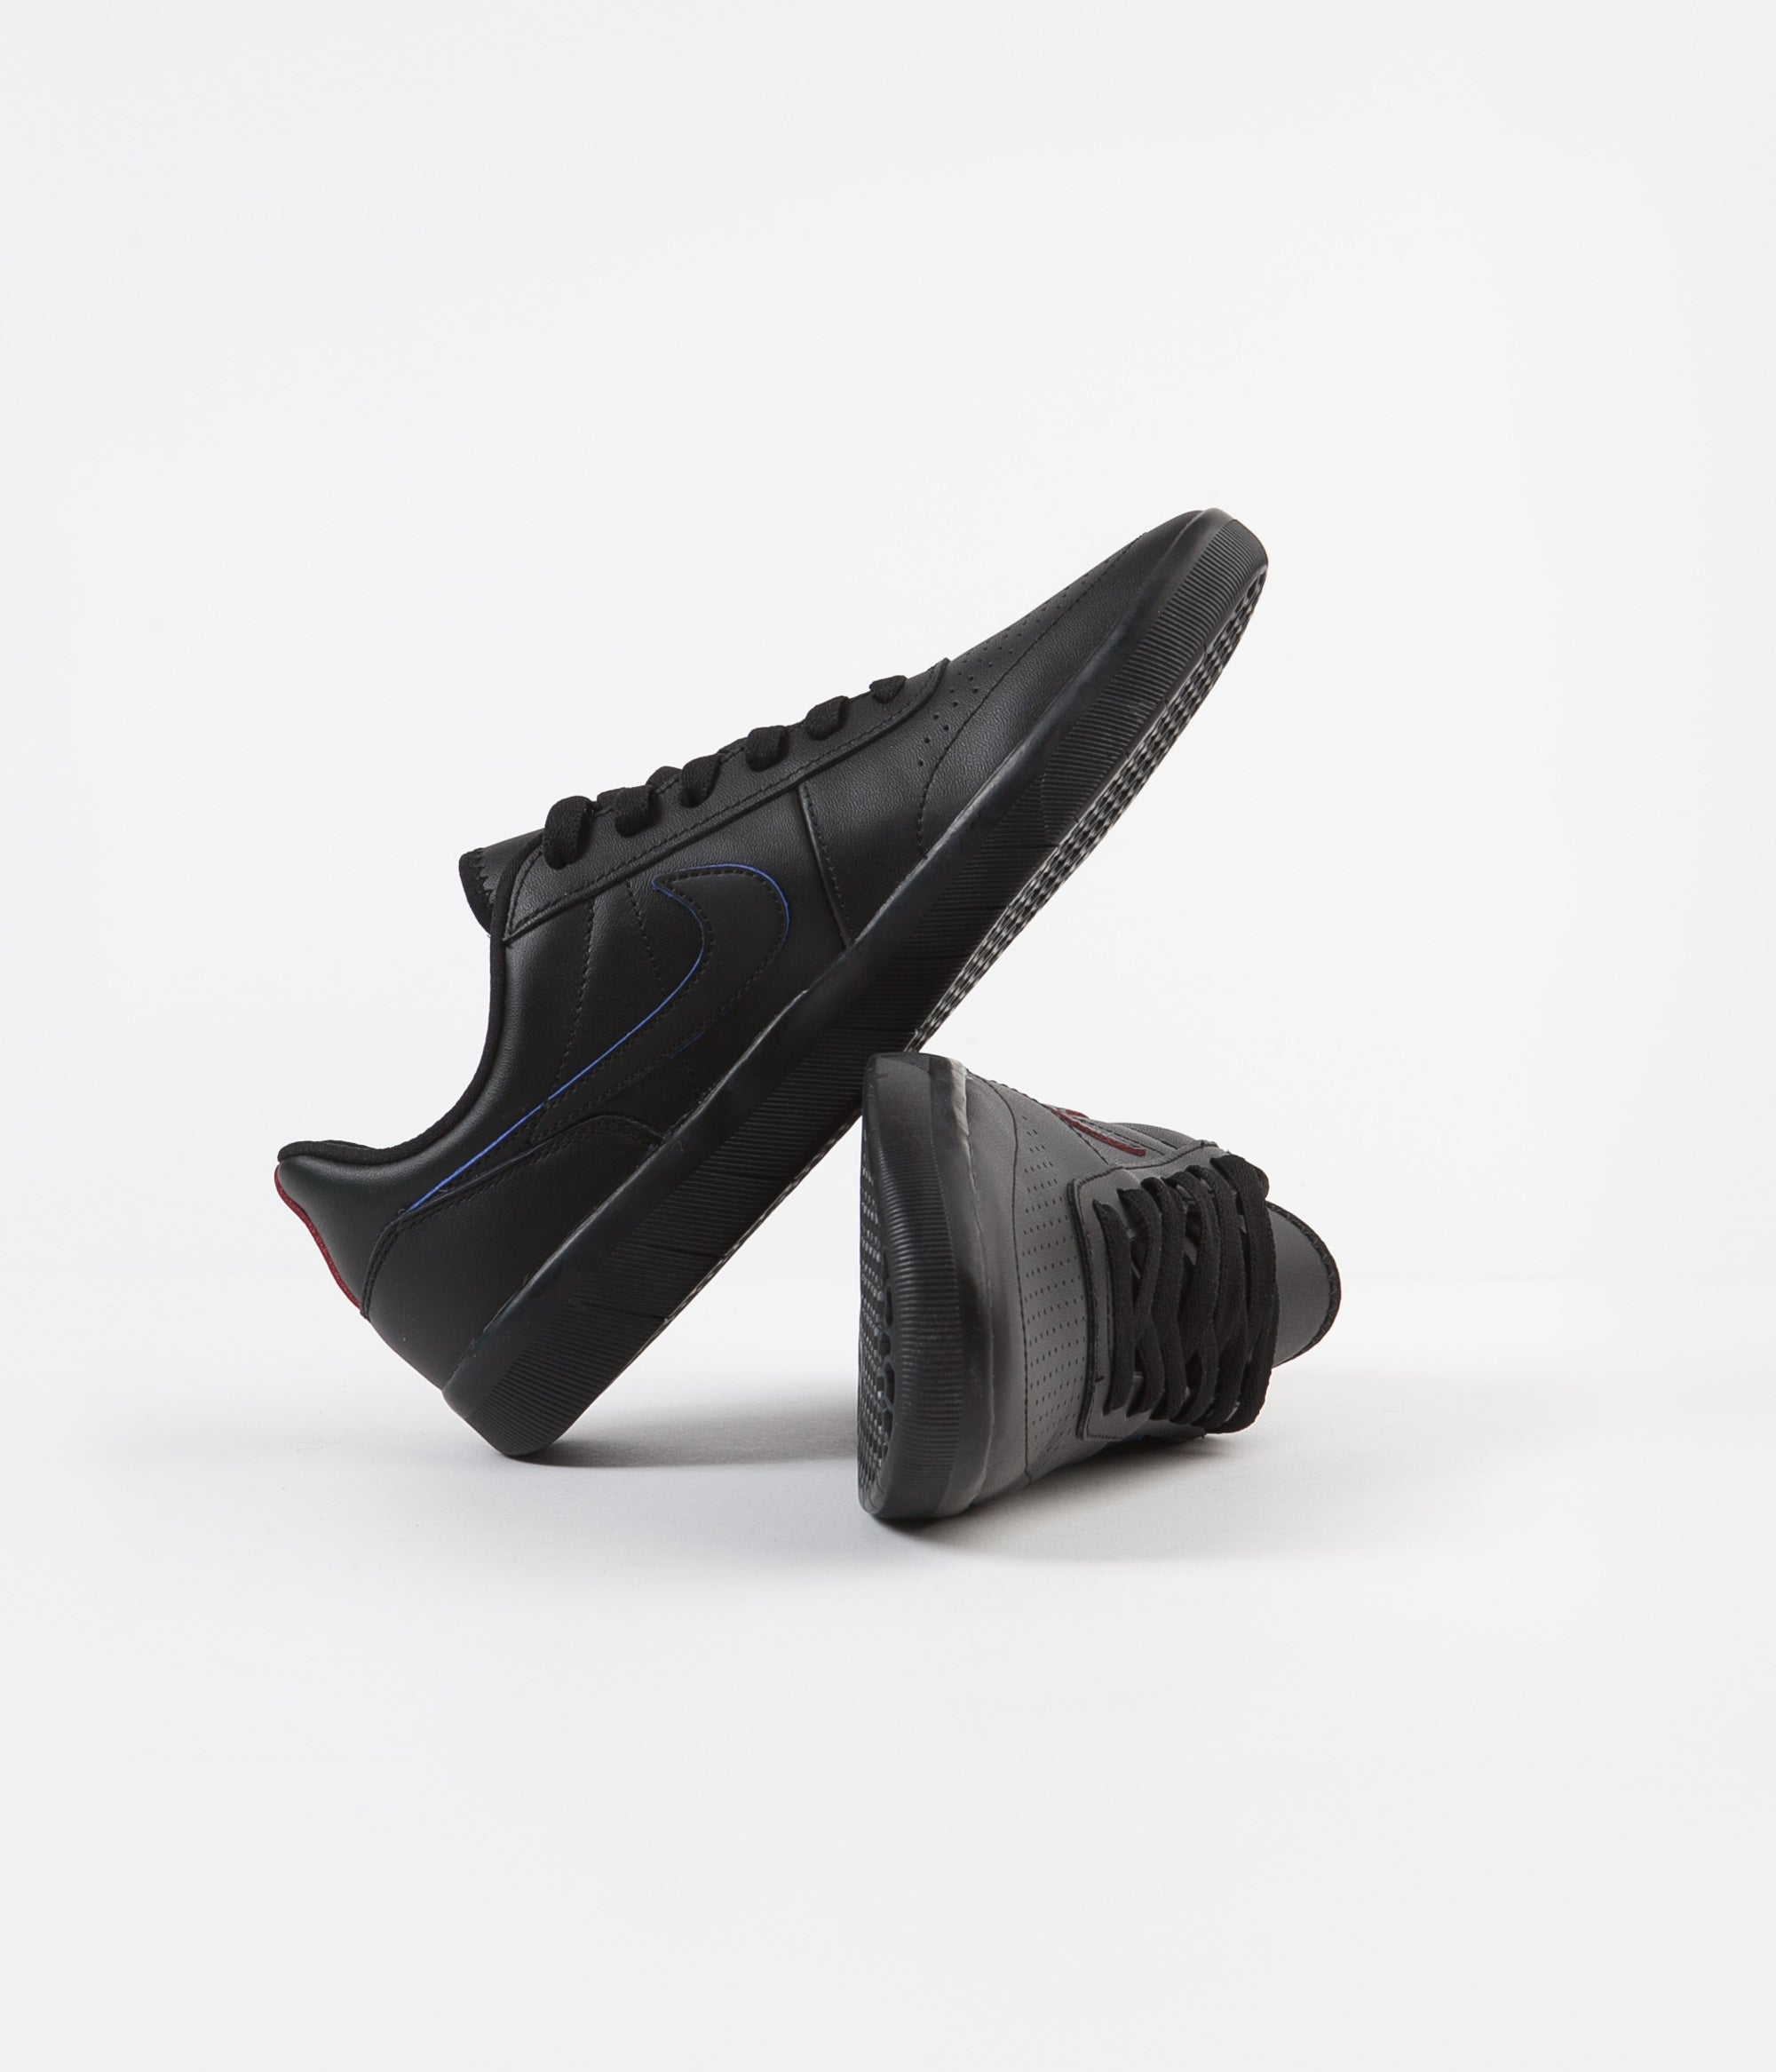 Nike SB Team Classic Premium Shoes - Black / Black - University Red - Pacific Blue